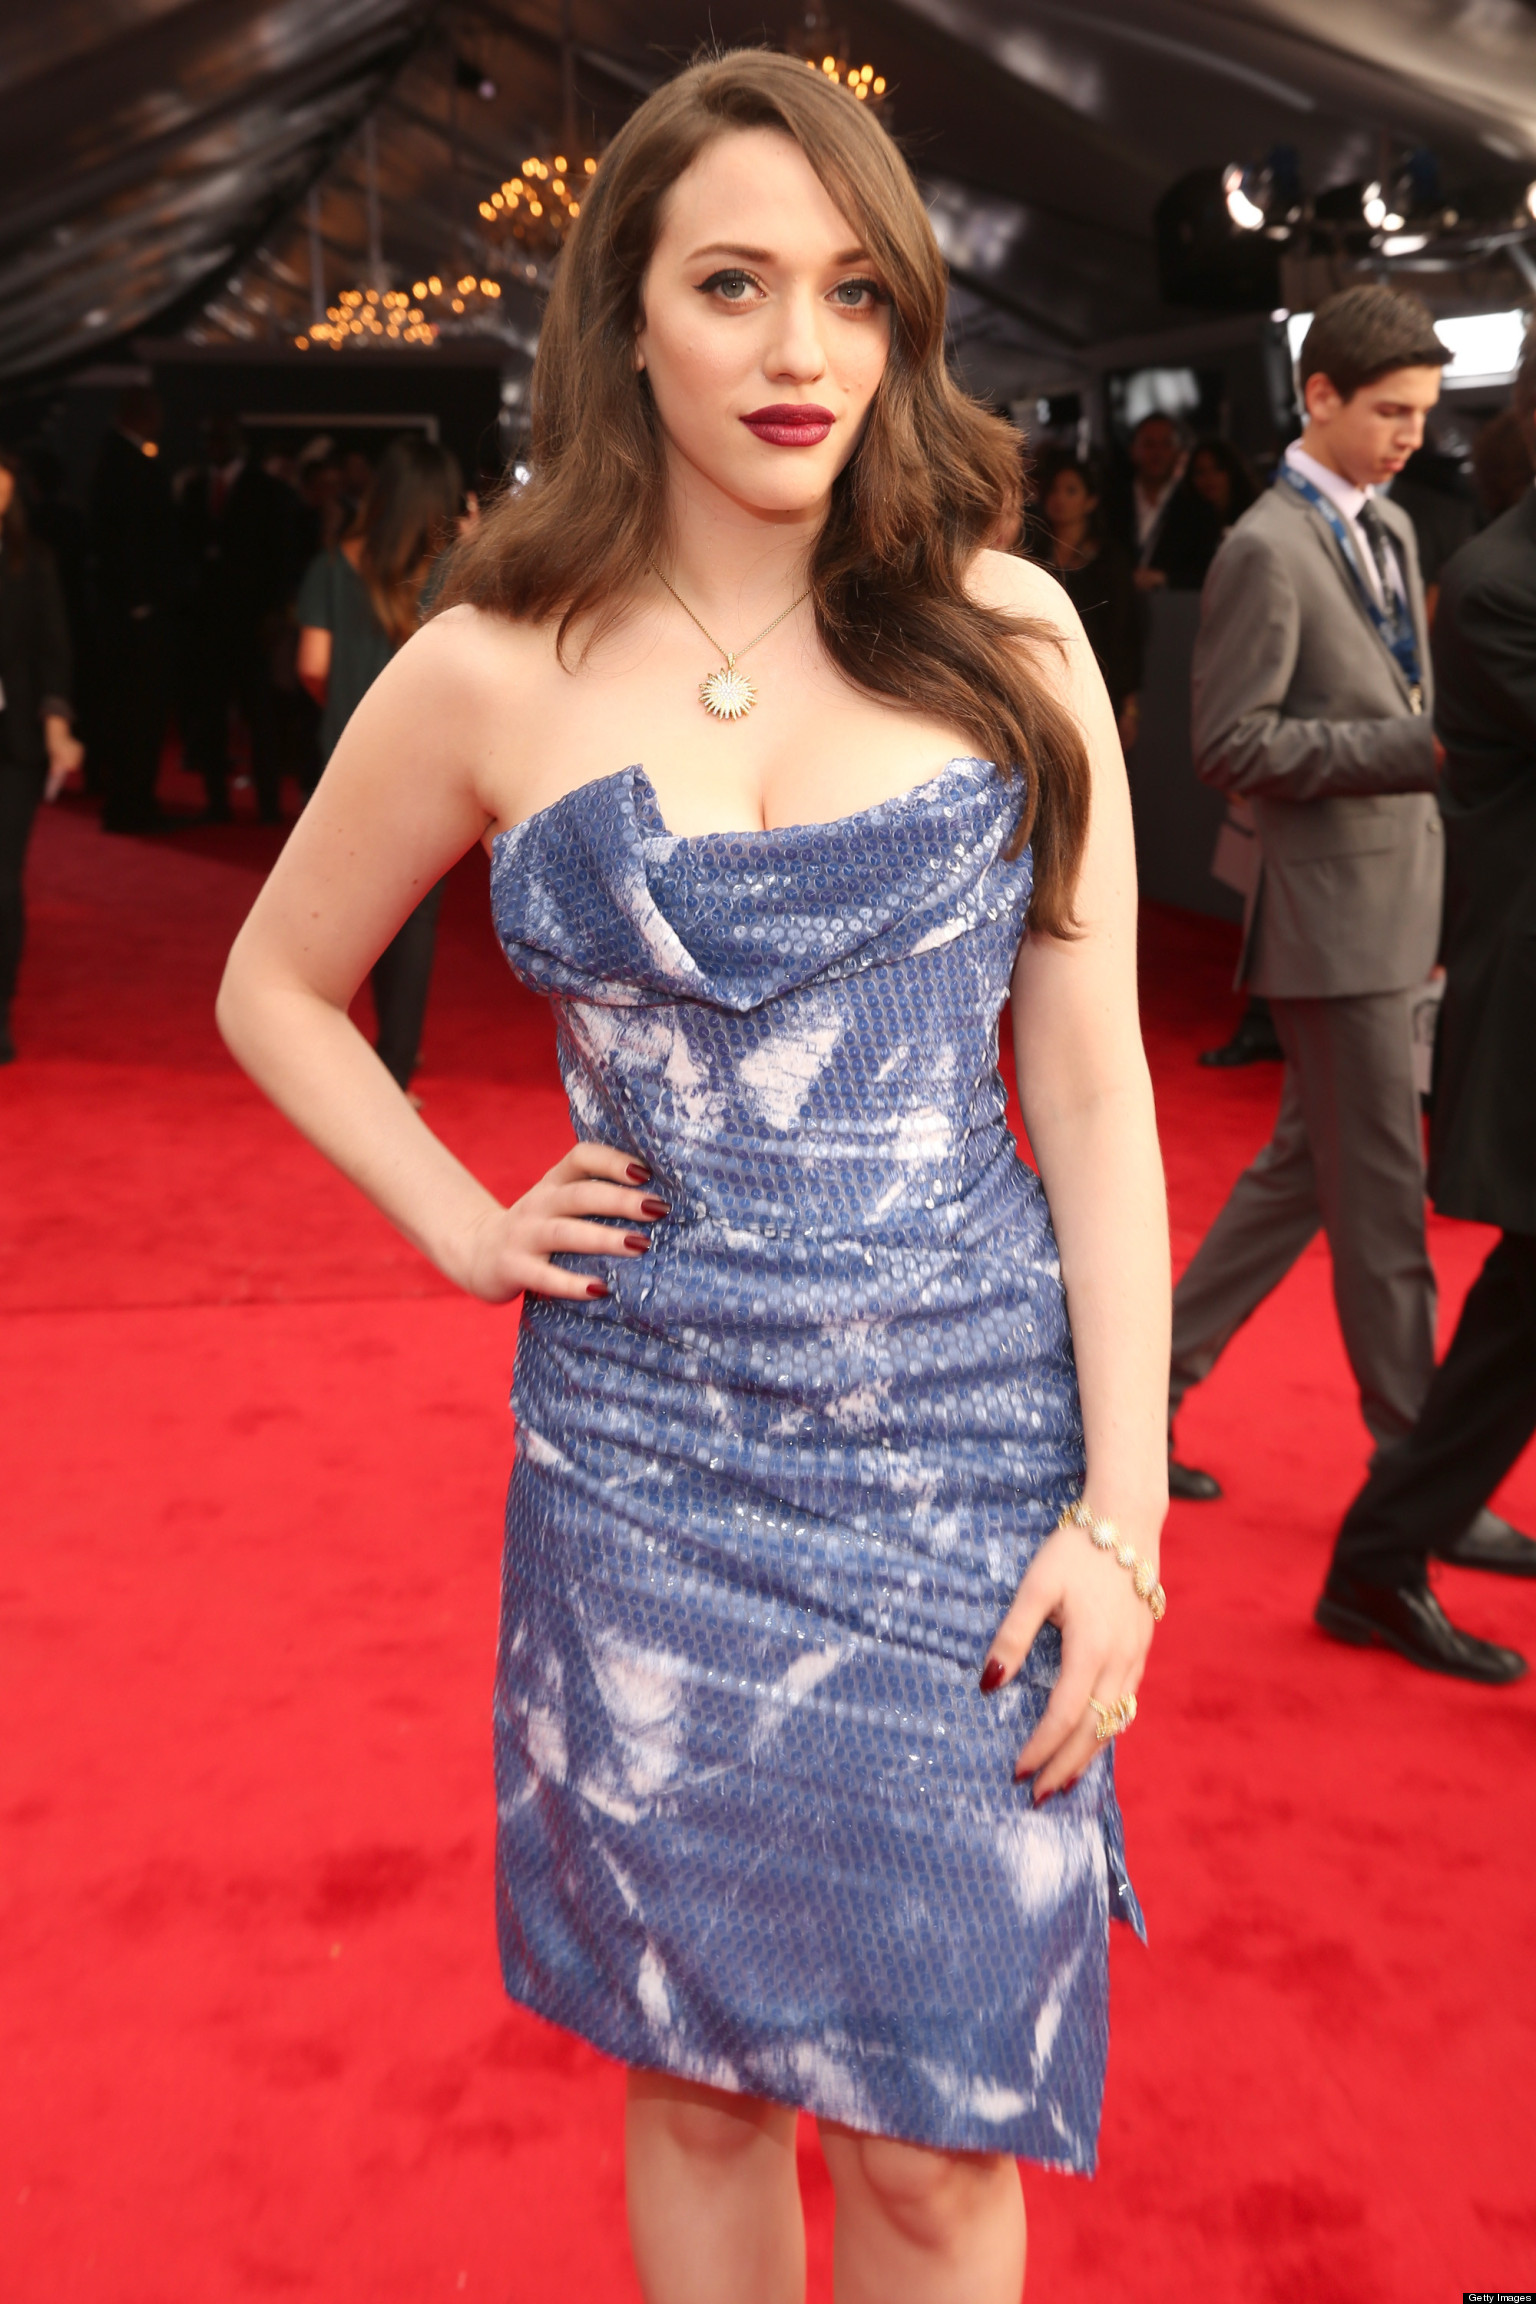 Kat dennings sex and the city images 69